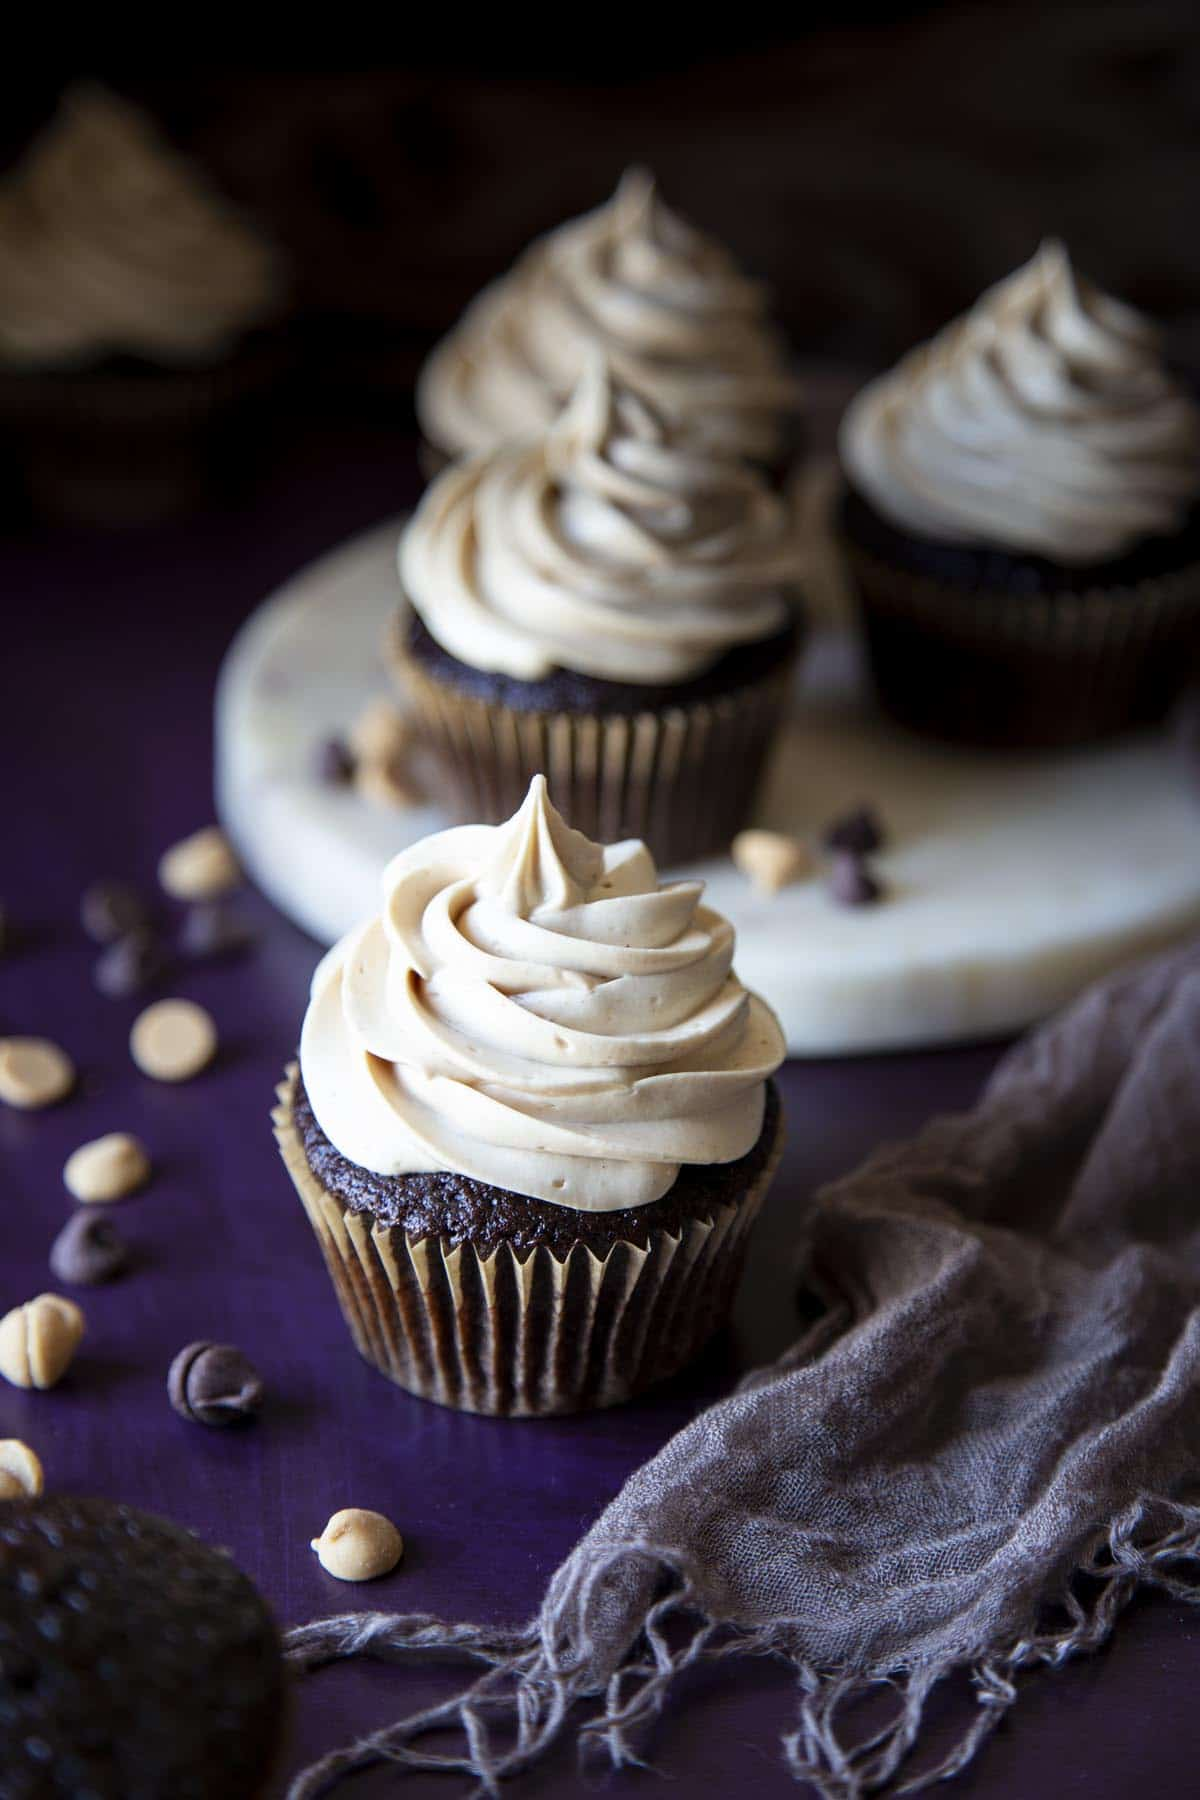 Several chocolate cupcakes with peanut butter frosting on a purple surface with a gray towel